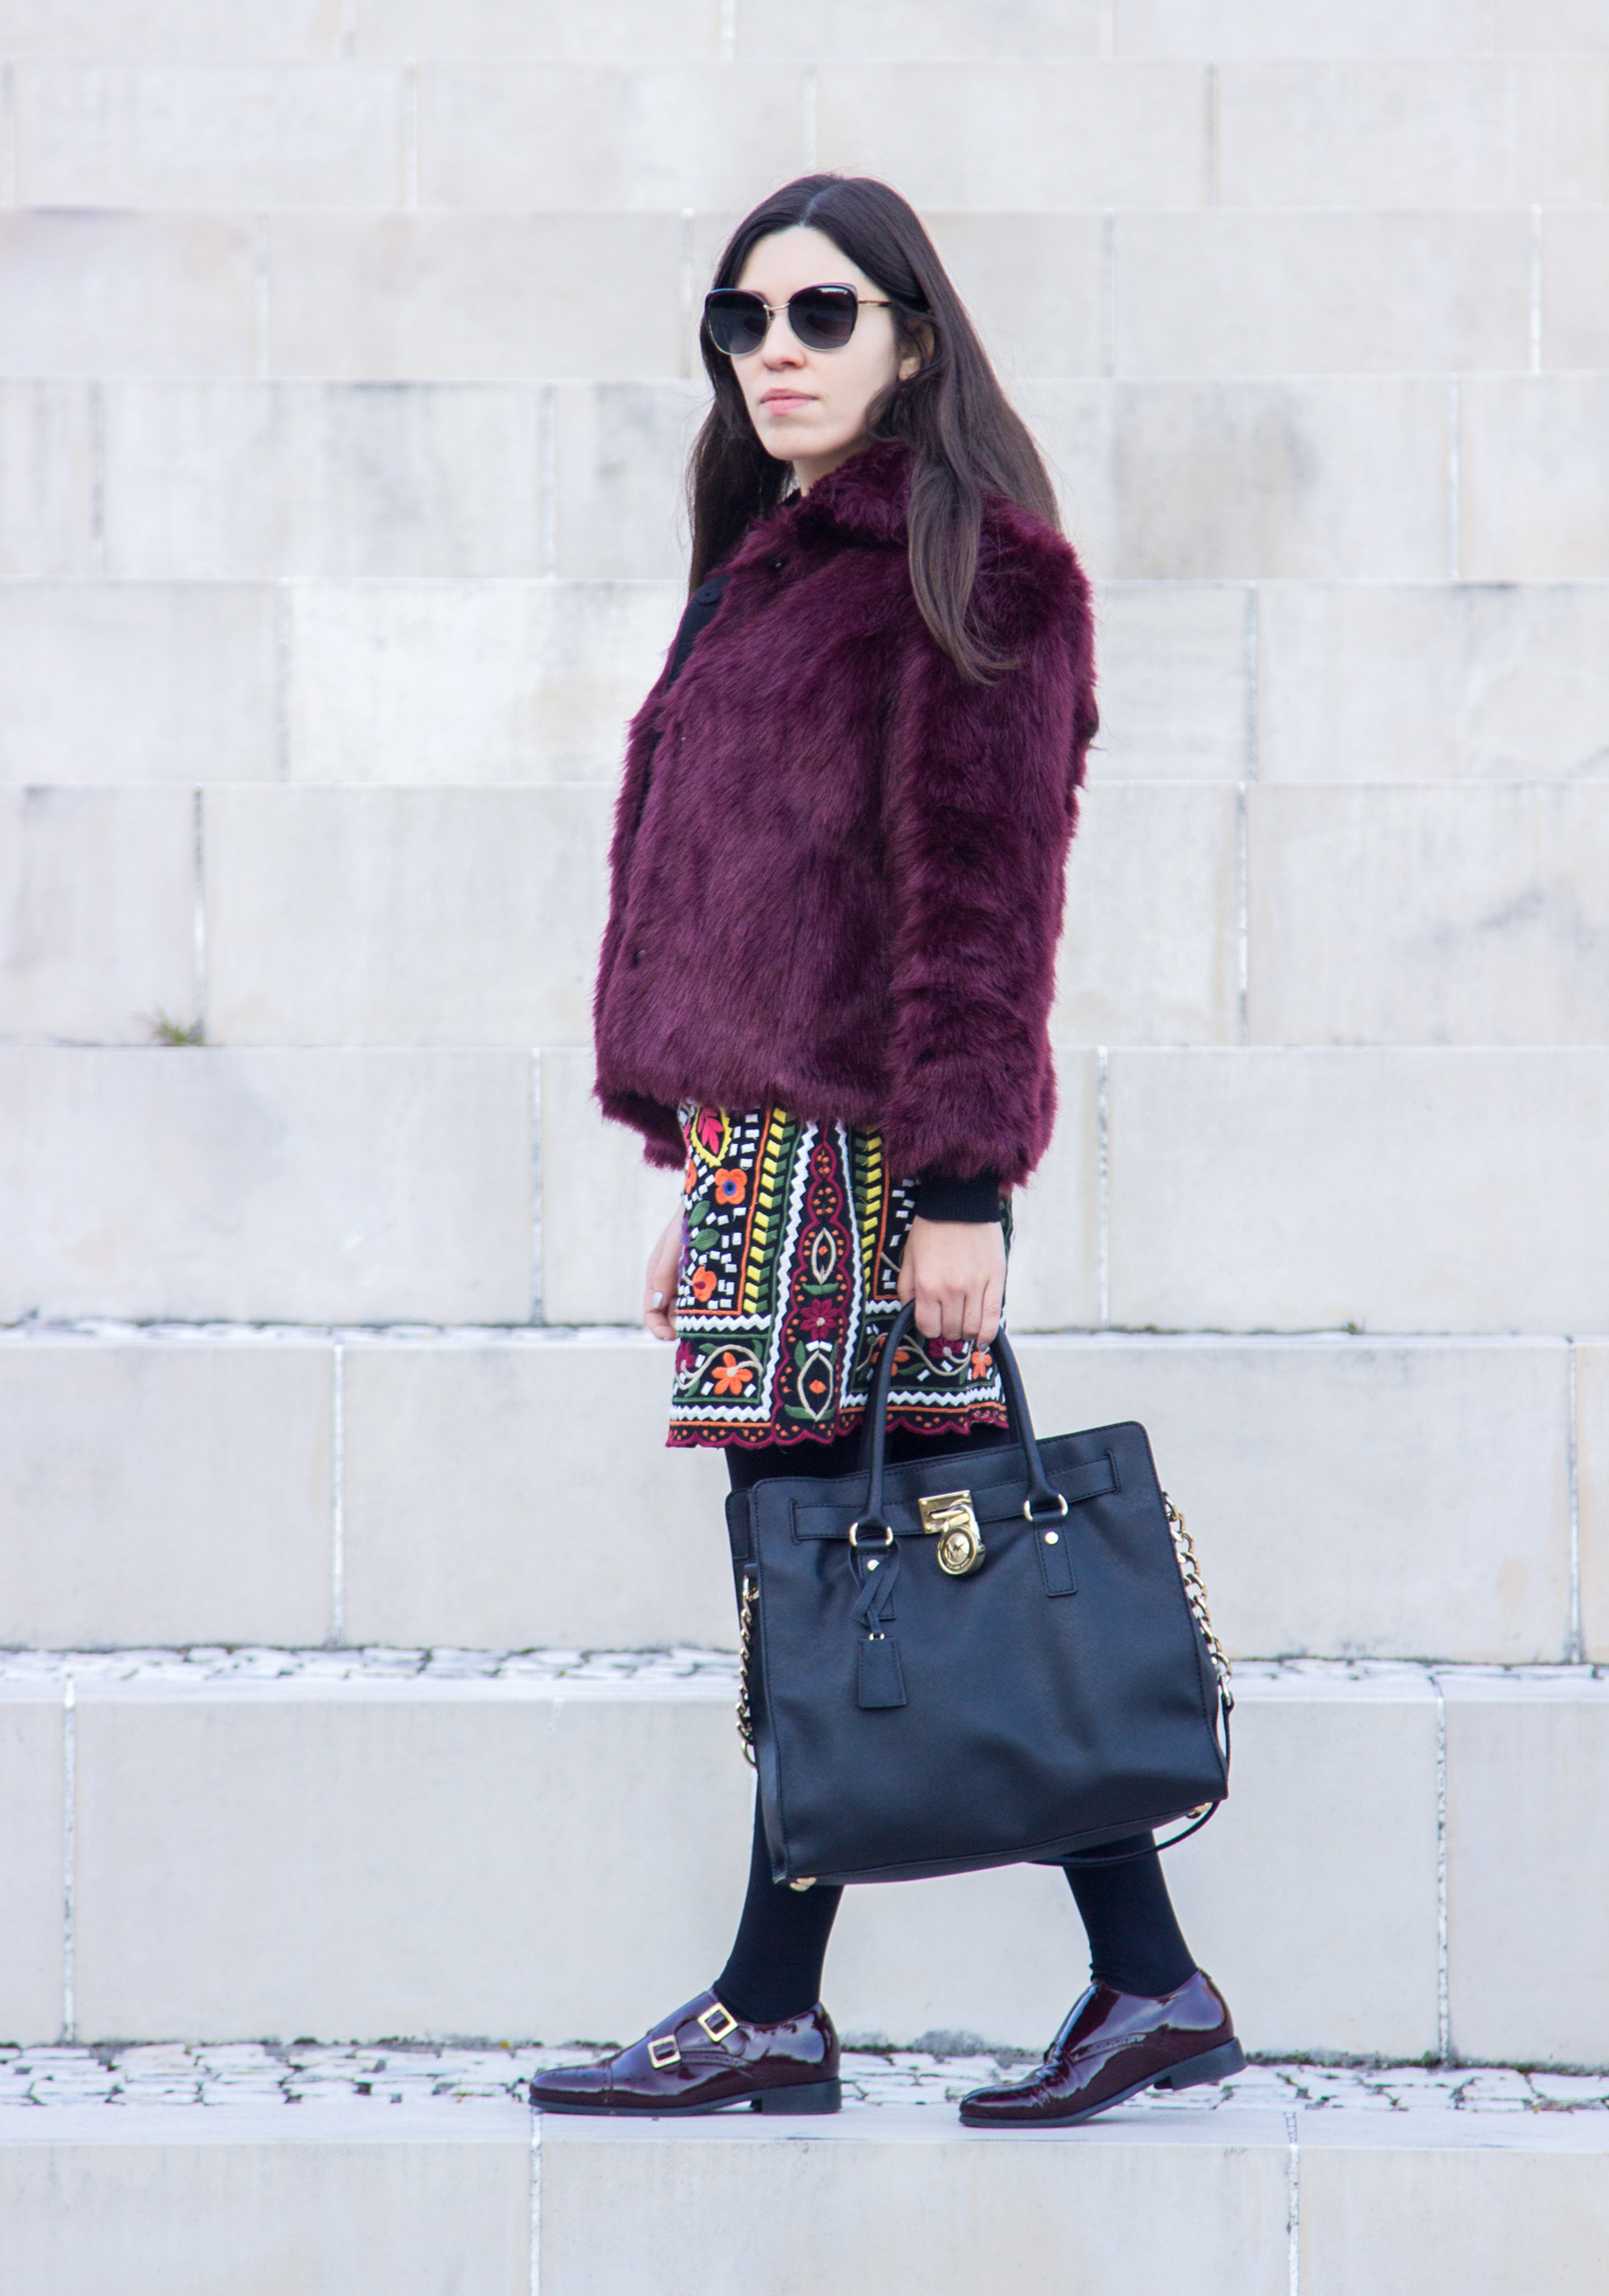 Le Fashionaire blogger catarine martins burgundy faux fur stradivarius coat embroidered flowers colorful zara black skirt 3374 EN blogger catarine martins burgundy faux fur stradivarius coat embroidered flowers colorful zara black skirt 3374 EN